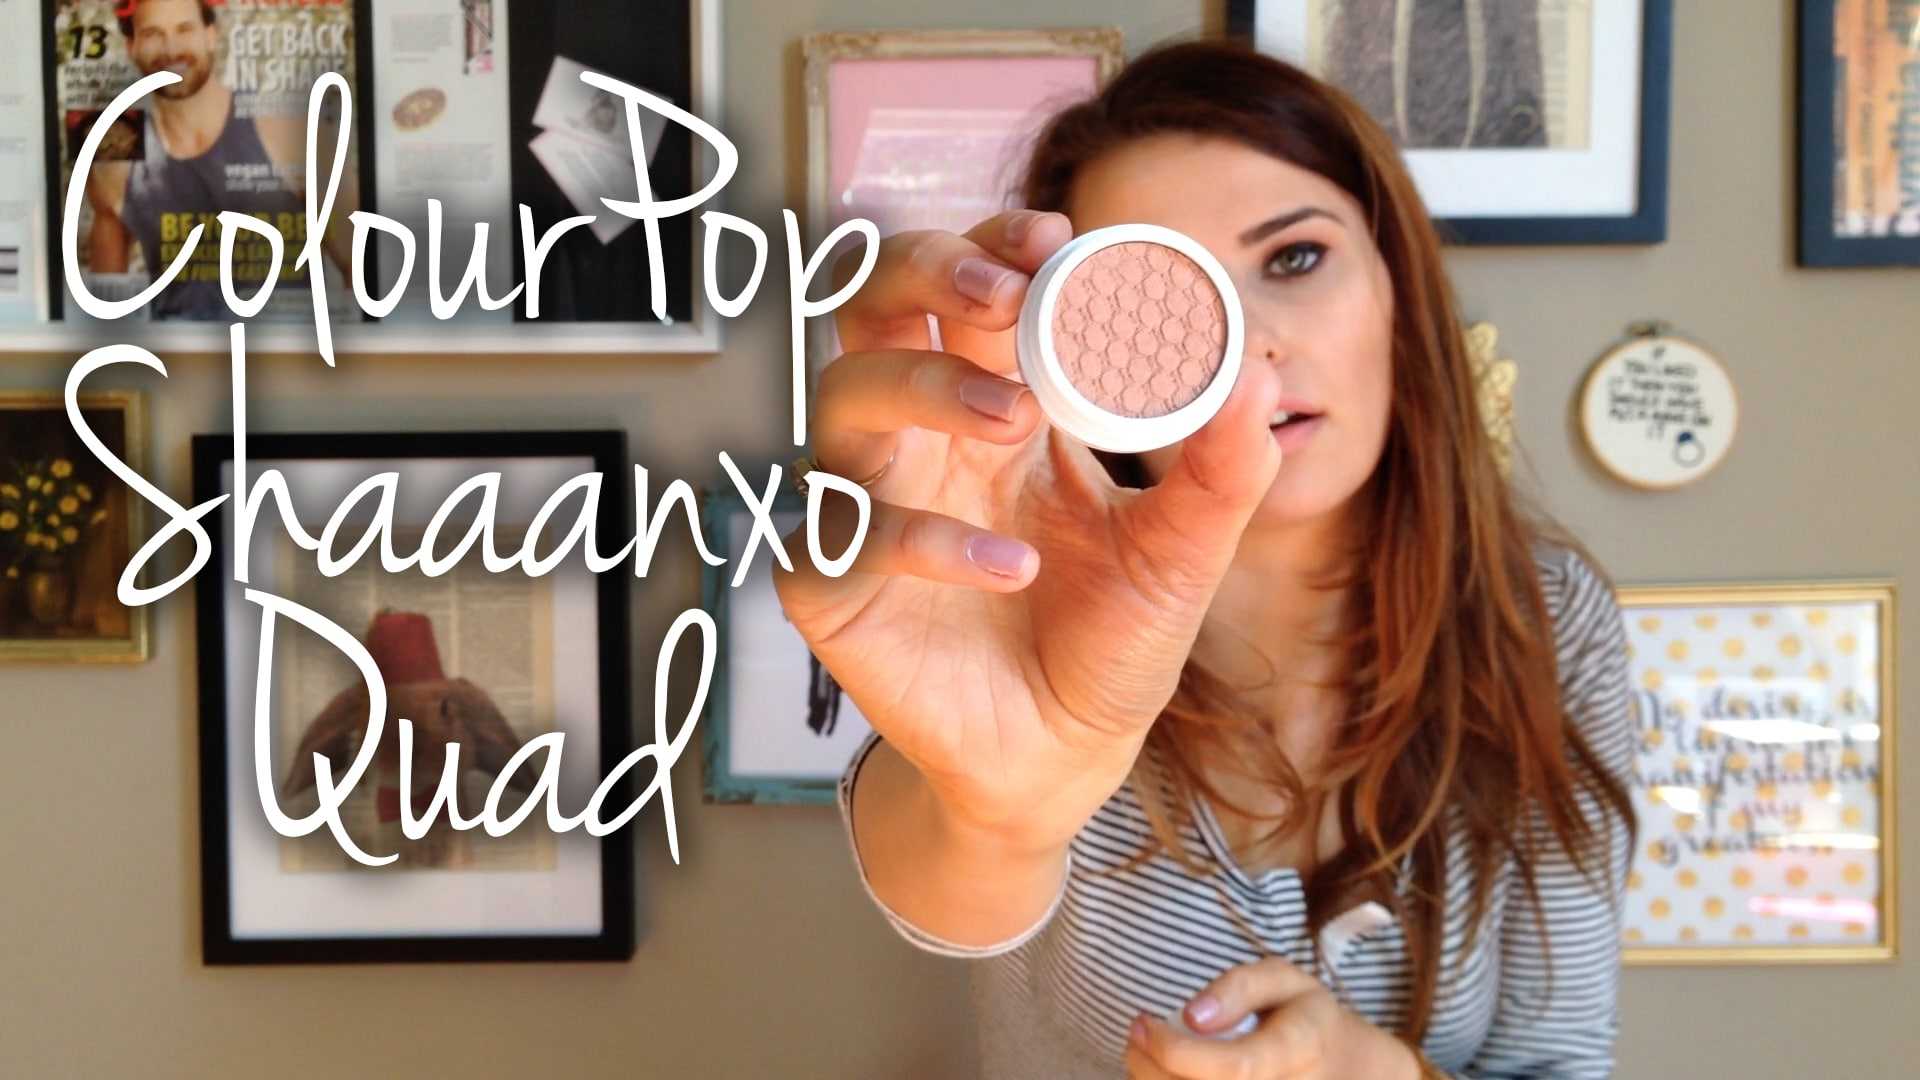 ColourPop x Shaaanxo Quad First Impressions & Swatches Video